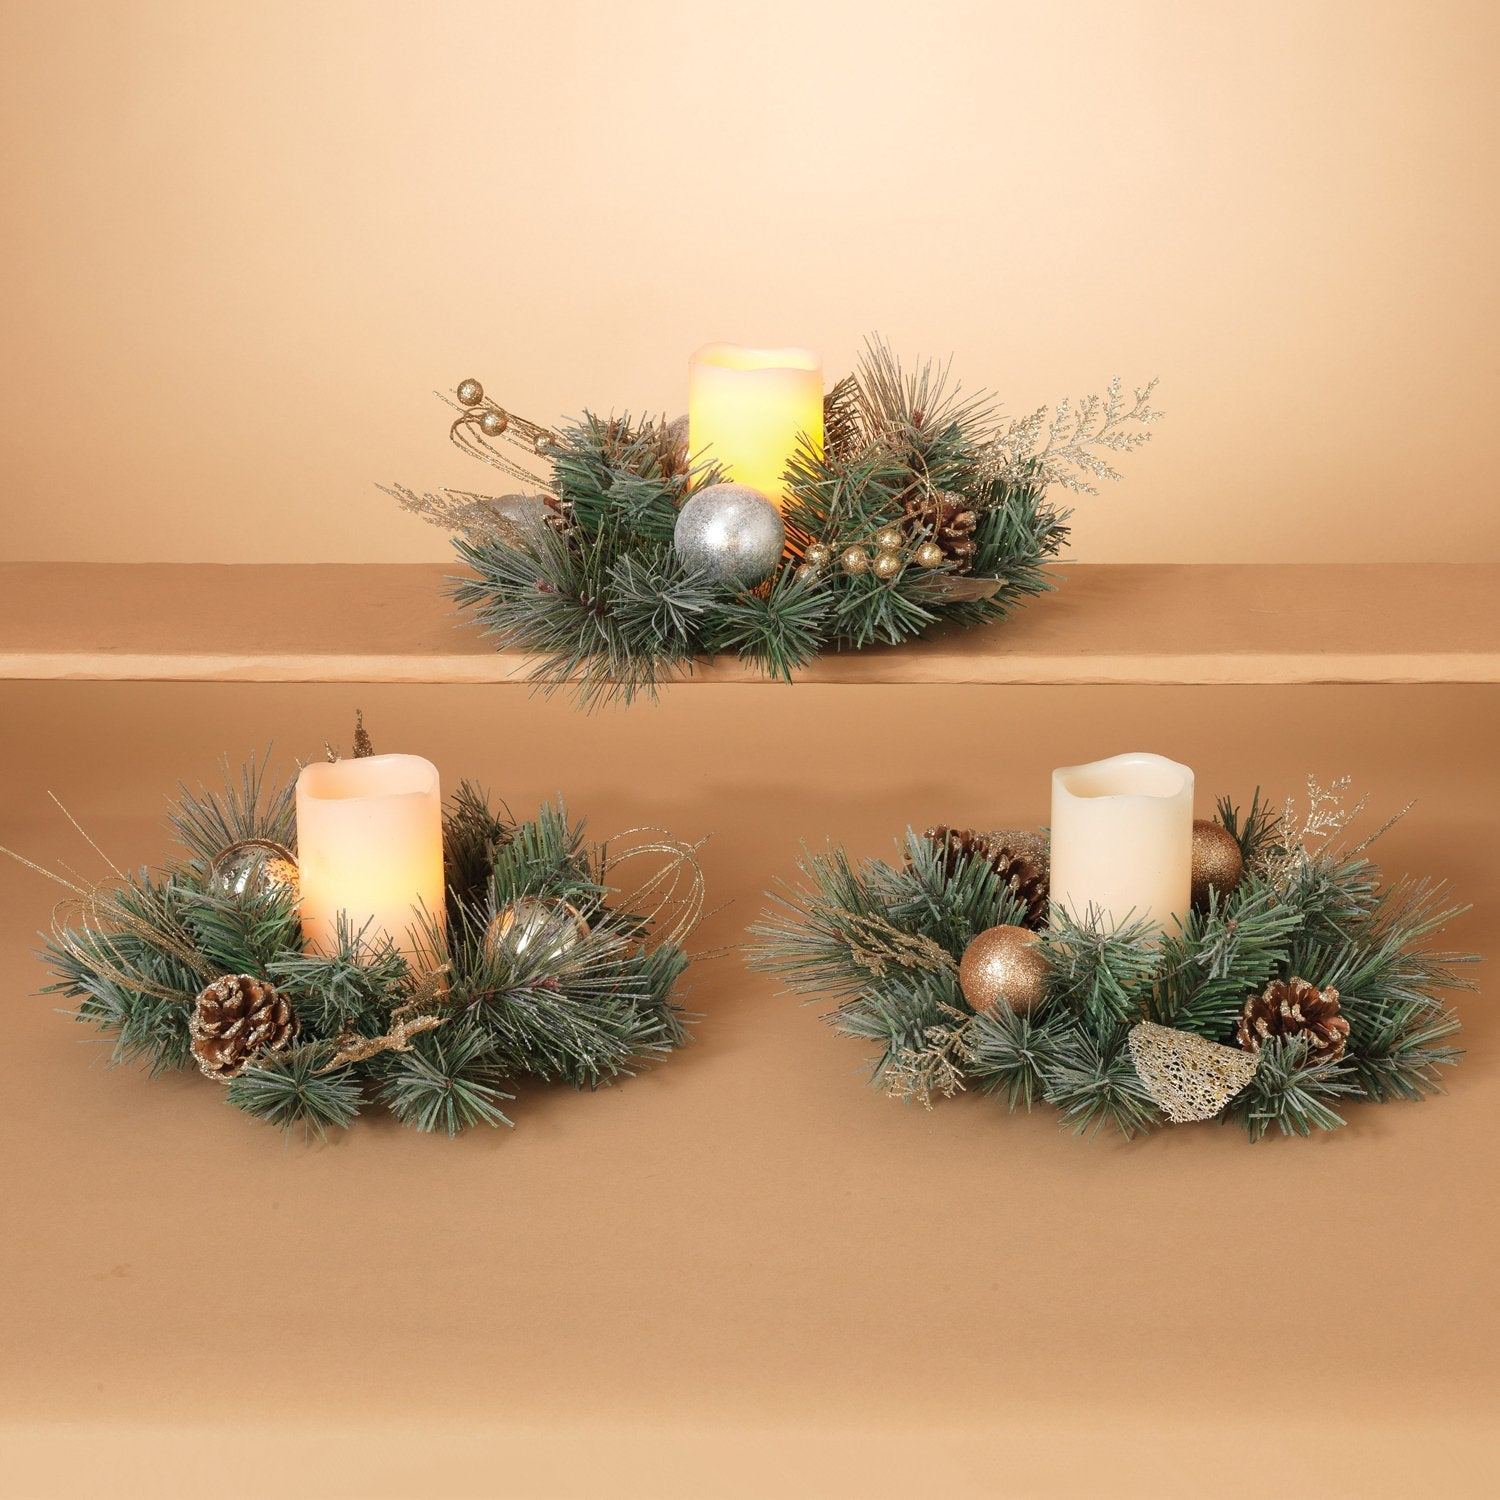 set of 3 christmas candle rings 10 inches diameter gold and silver with artificial pine - Decorative Christmas Candle Rings